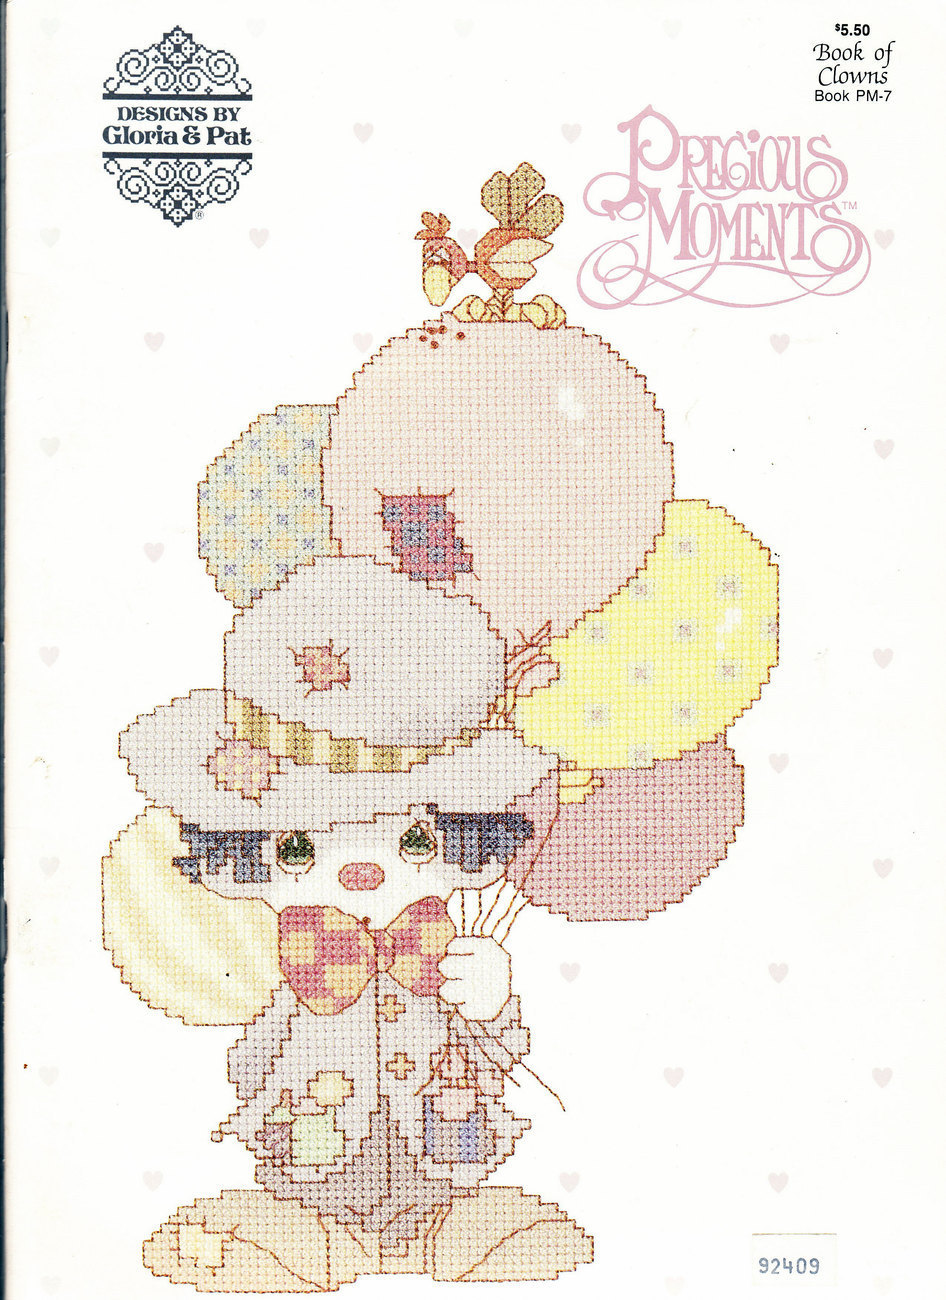 COUNTED CROSS STITCH PRECIOUS MOMENTS BOOK OF CLOWNS PM-7